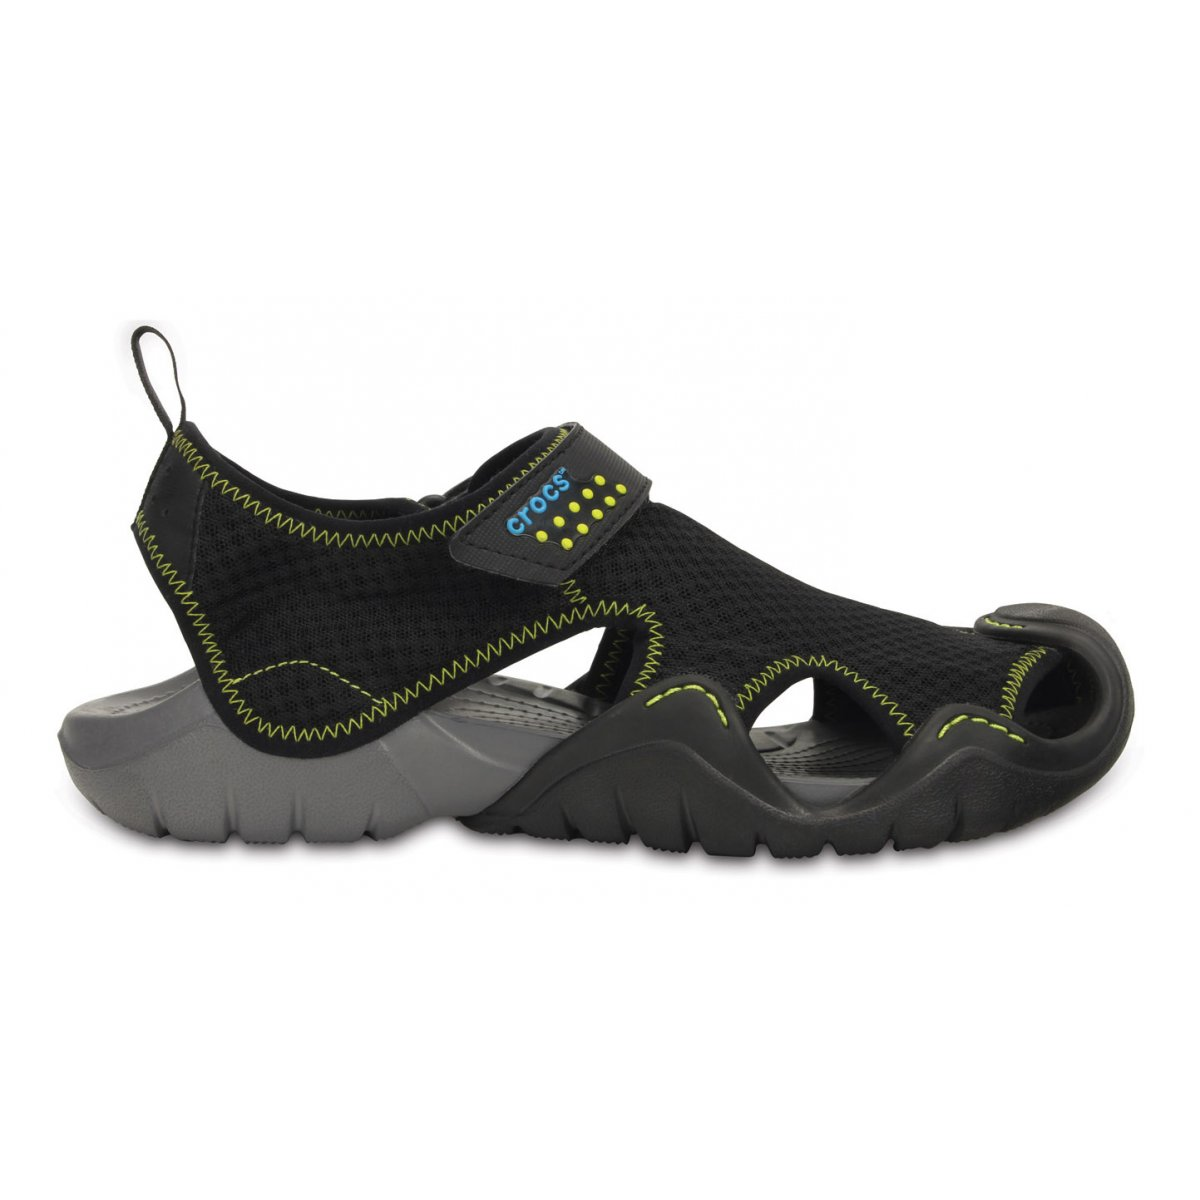 Crocs sandalo da uomo swiftwater 15041